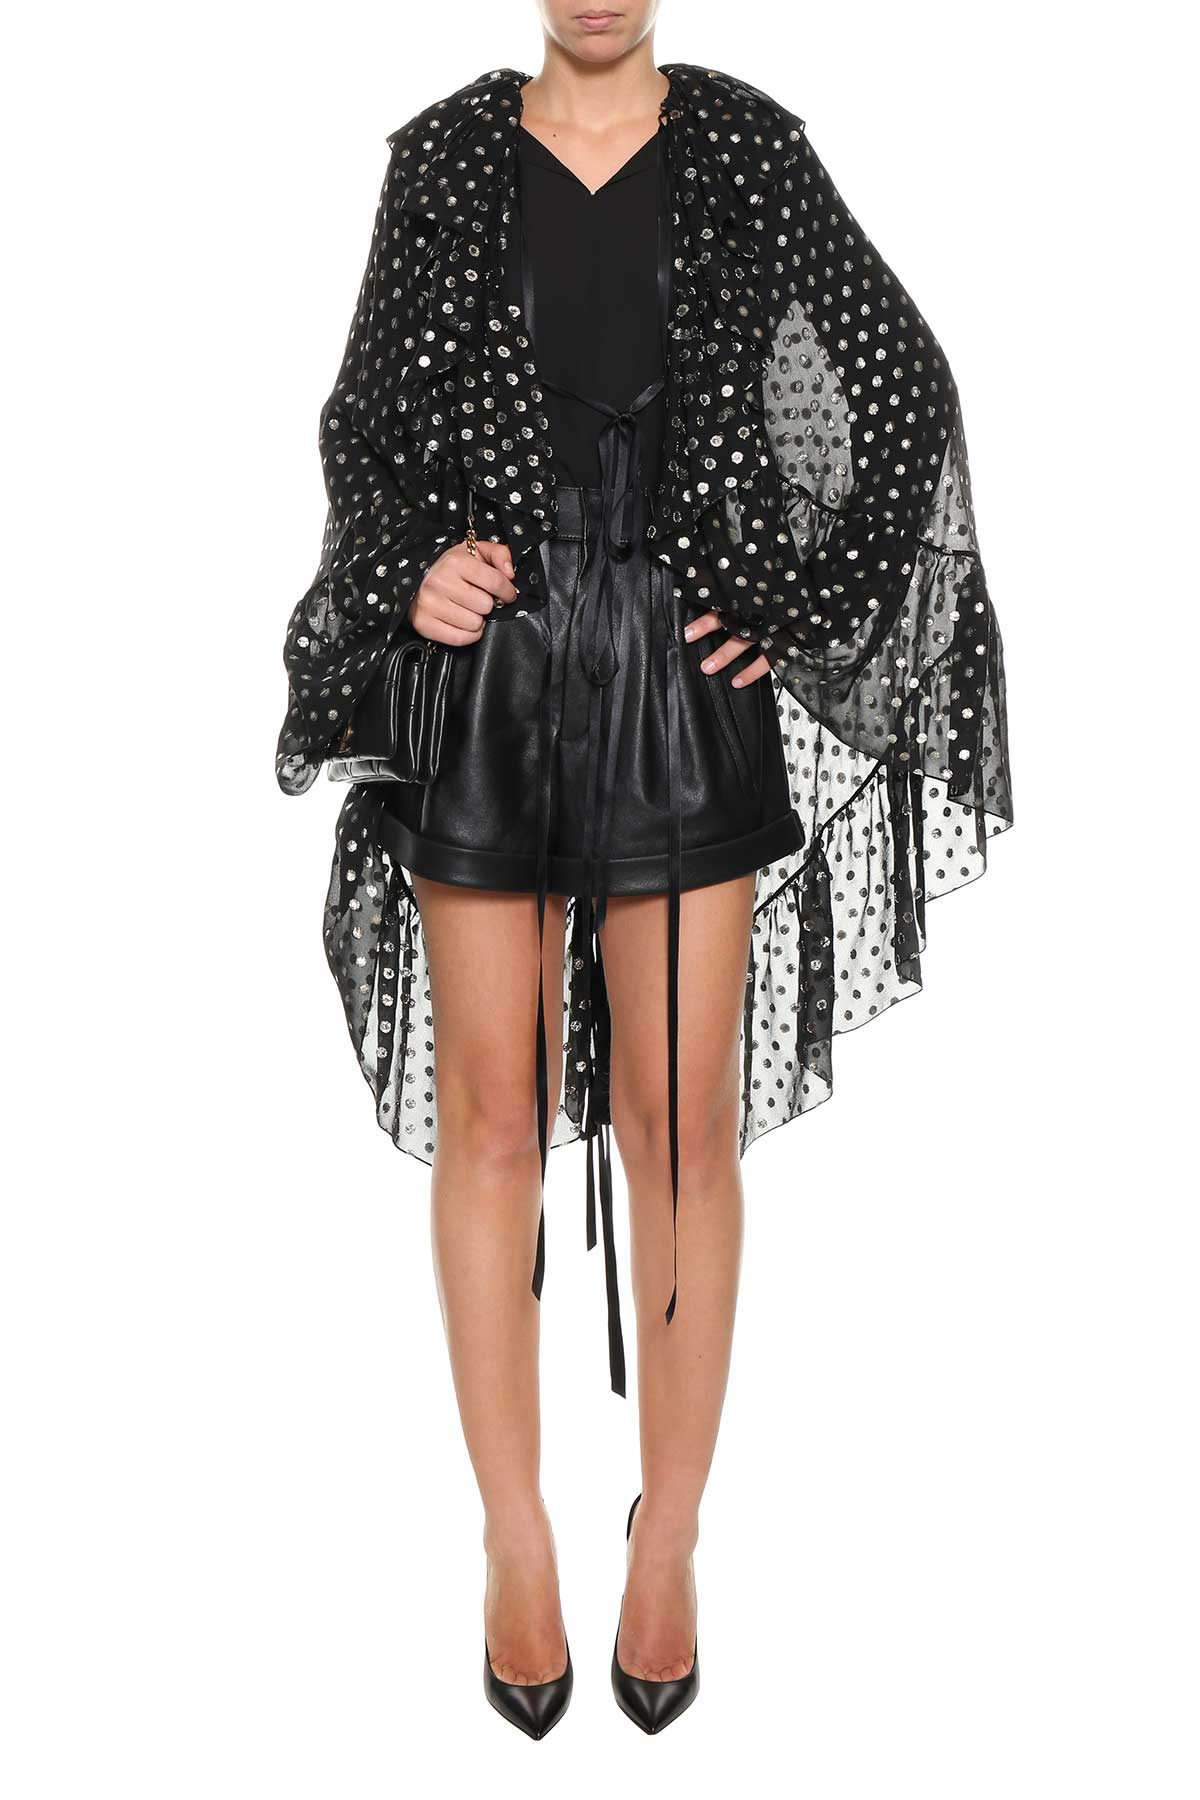 Free Shipping Cost Polka dots cape shirt Saint Laurent Great Deals For Sale Cheap Deals Free Shipping Low Cost M882jW3y6V